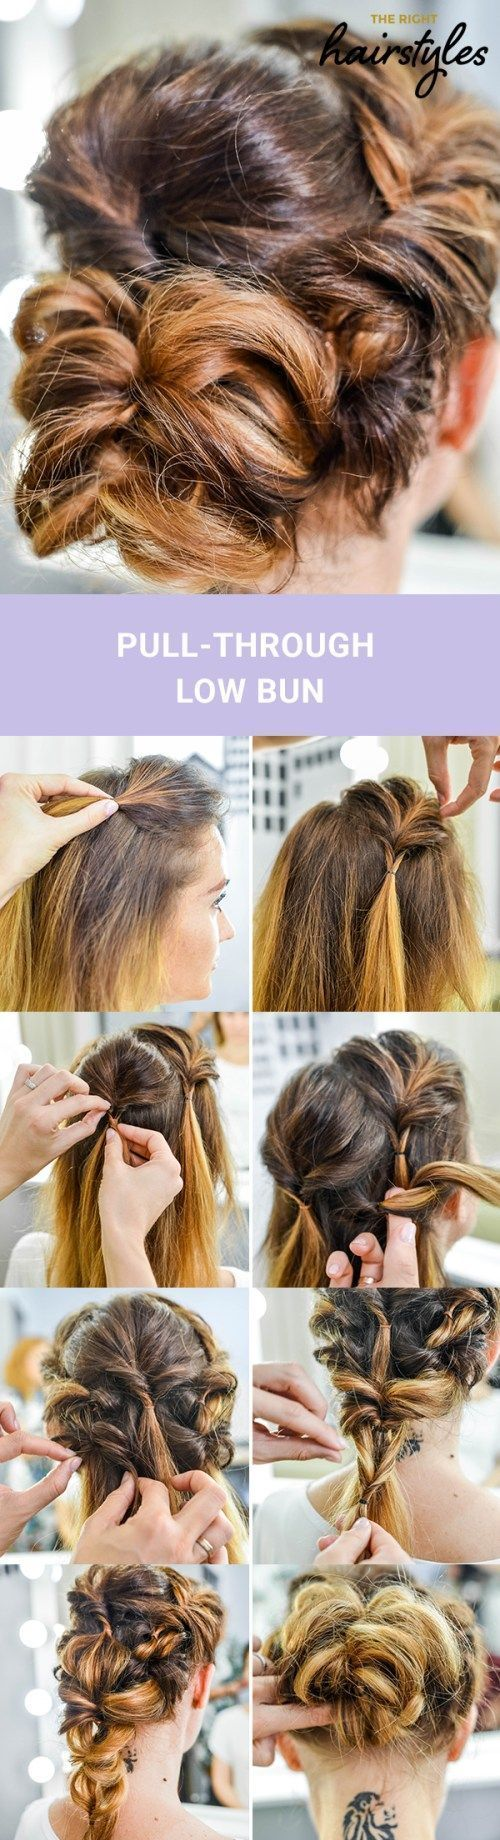 3 beautiful rolls Hairstyles for fine hair # Buns #Fine #Hairstyles #for ... - # Buns